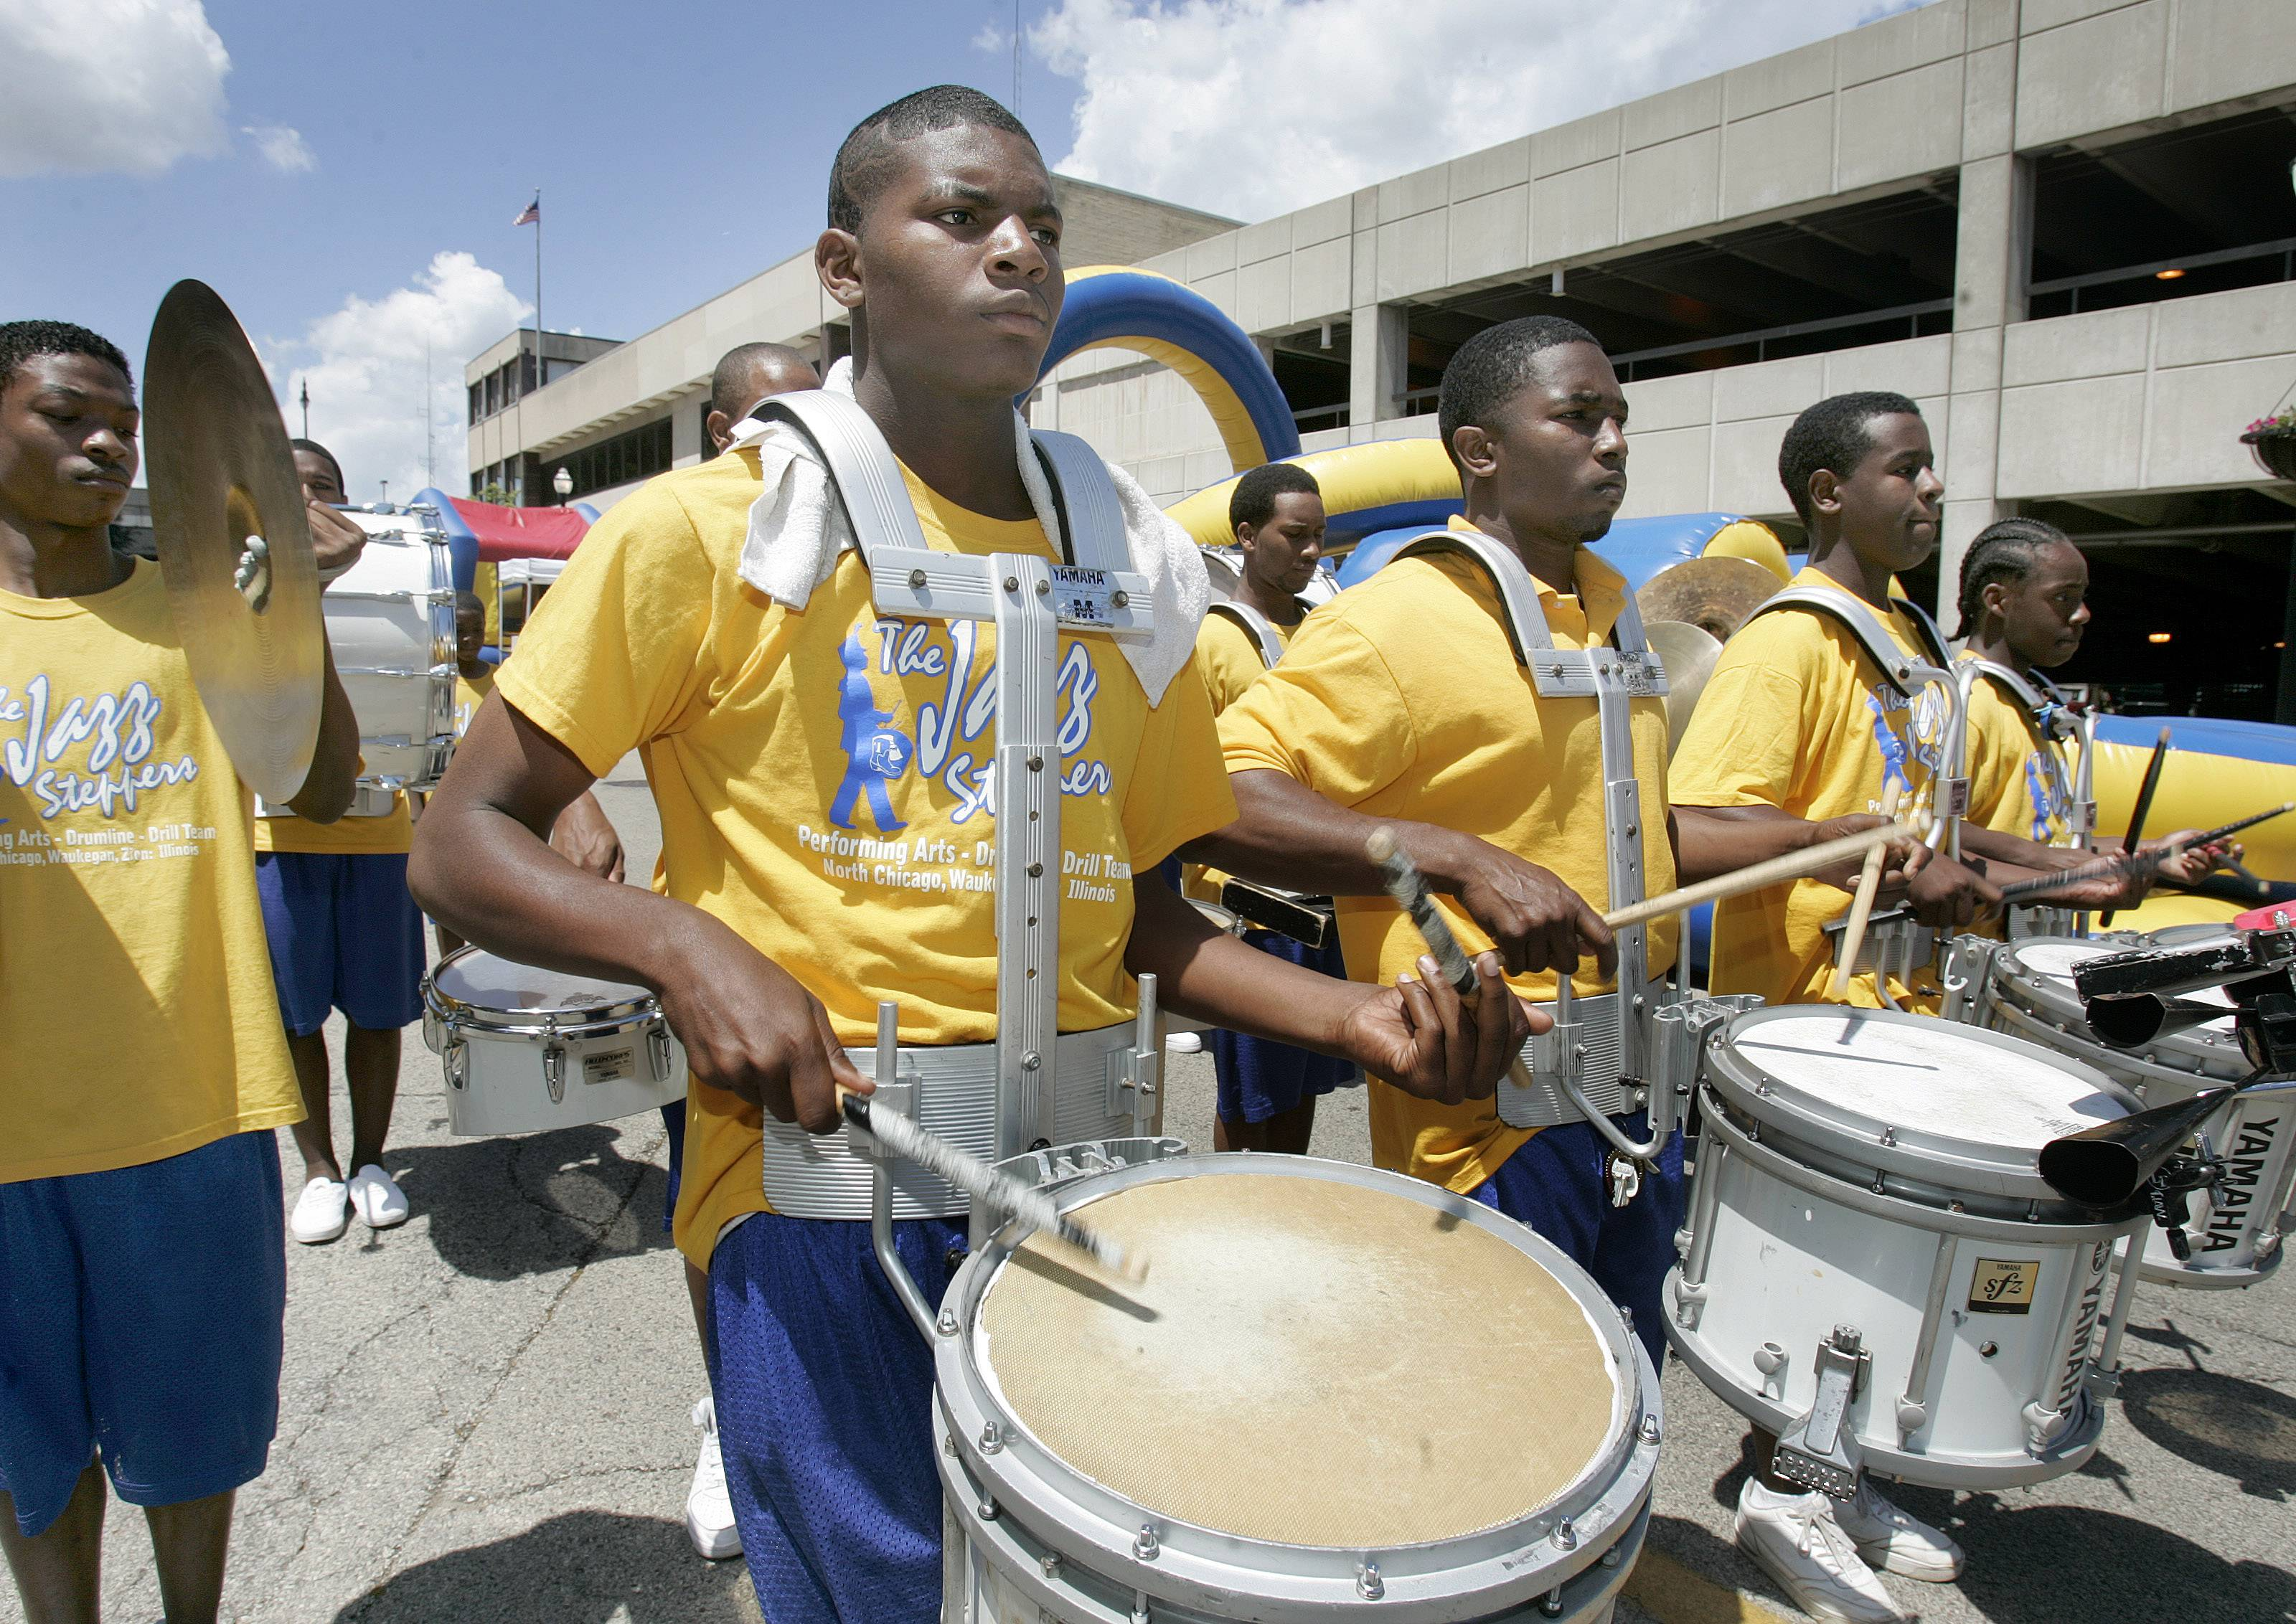 The Jazz Steppers drum line and drill team performs during the fifth annual Juneteenth Celebration in downtown Waukegan. This year marks Waukegan's 11th Juneteenth Celebration, commemorating the ending of slavery and saluting African American contributions to art, education and culture.